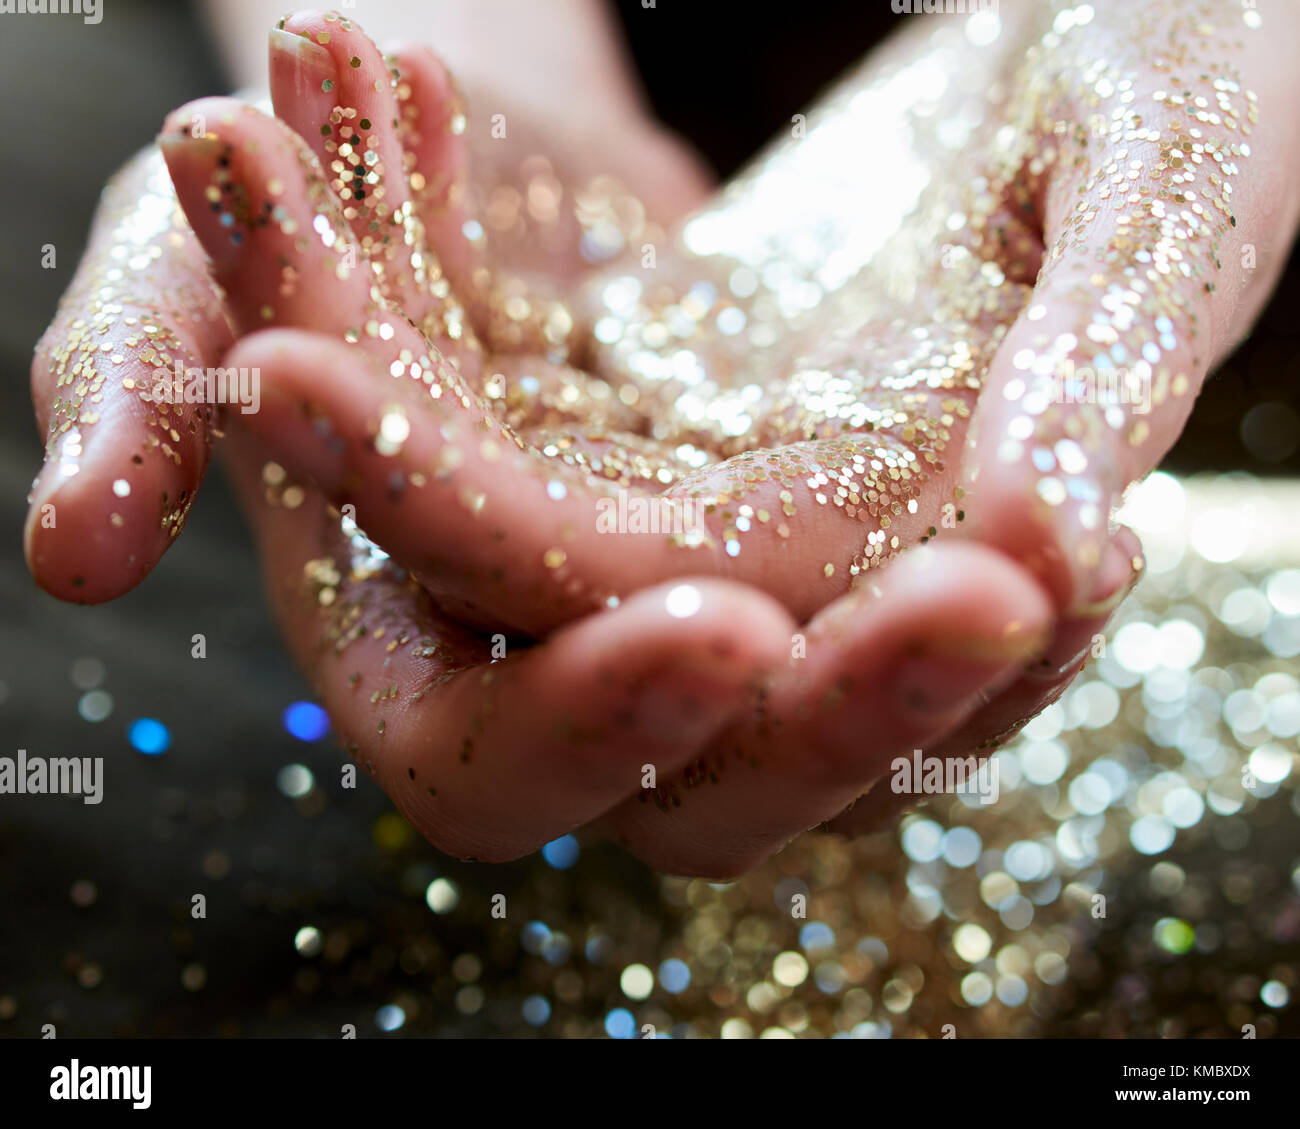 Close up hands cupping gold glitter - Stock Image